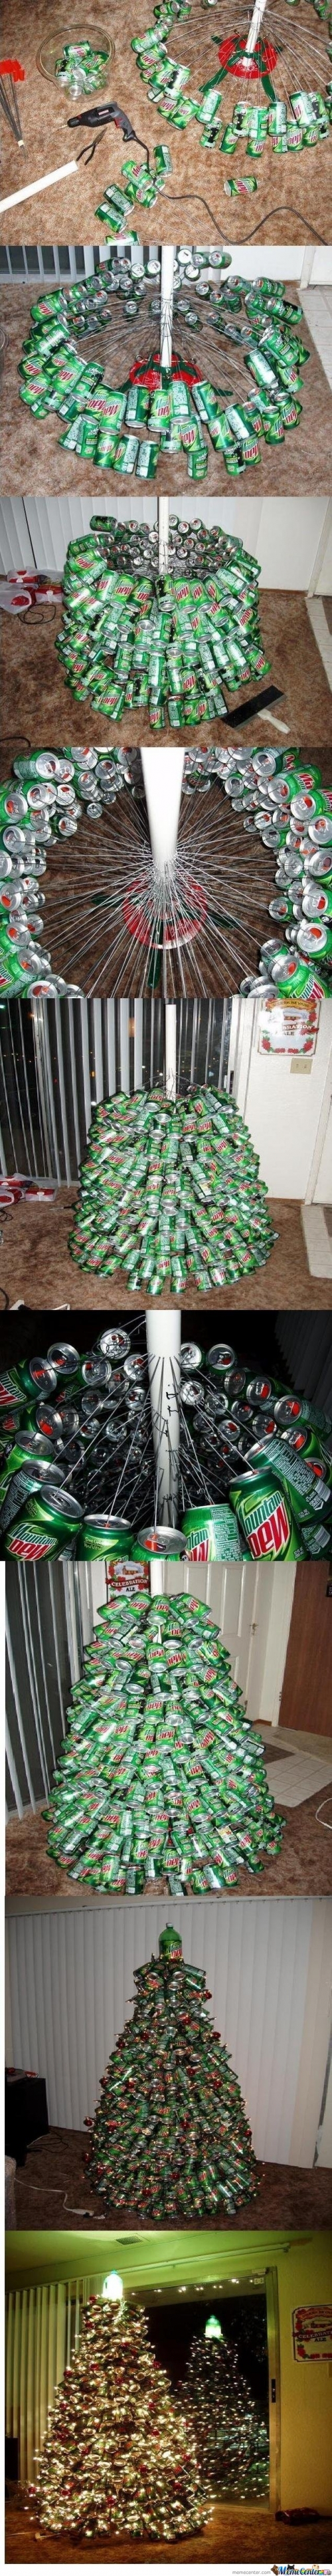 Mountain Dew Christmas Tree